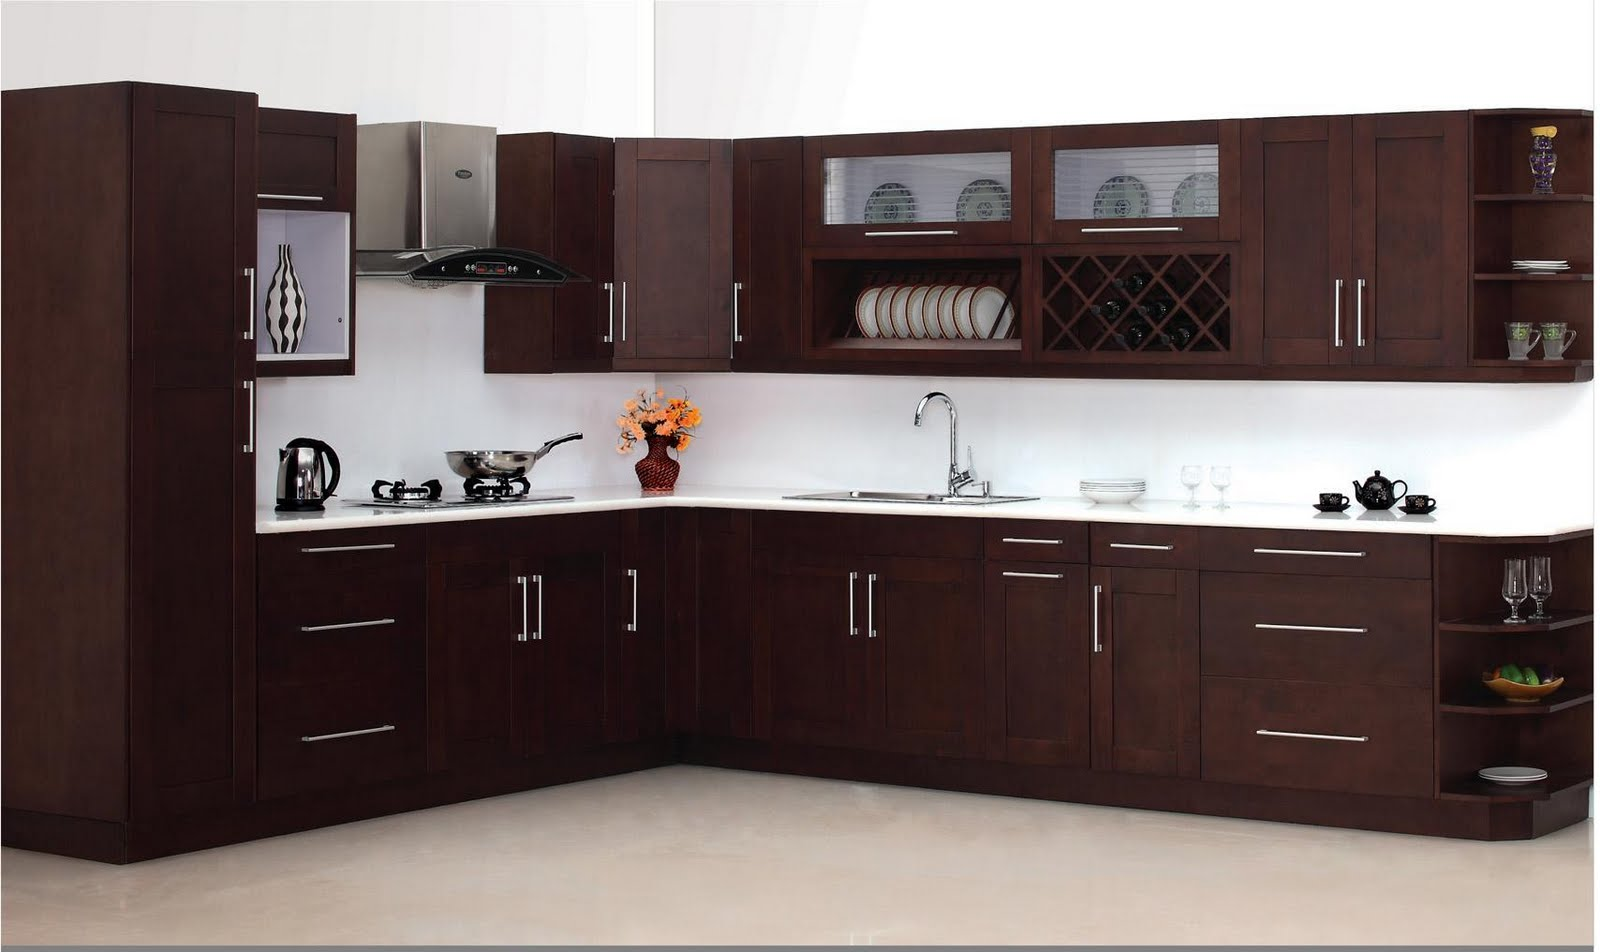 Espresso shaker kitchen cabinets images for Kitchen designs espresso cabinets